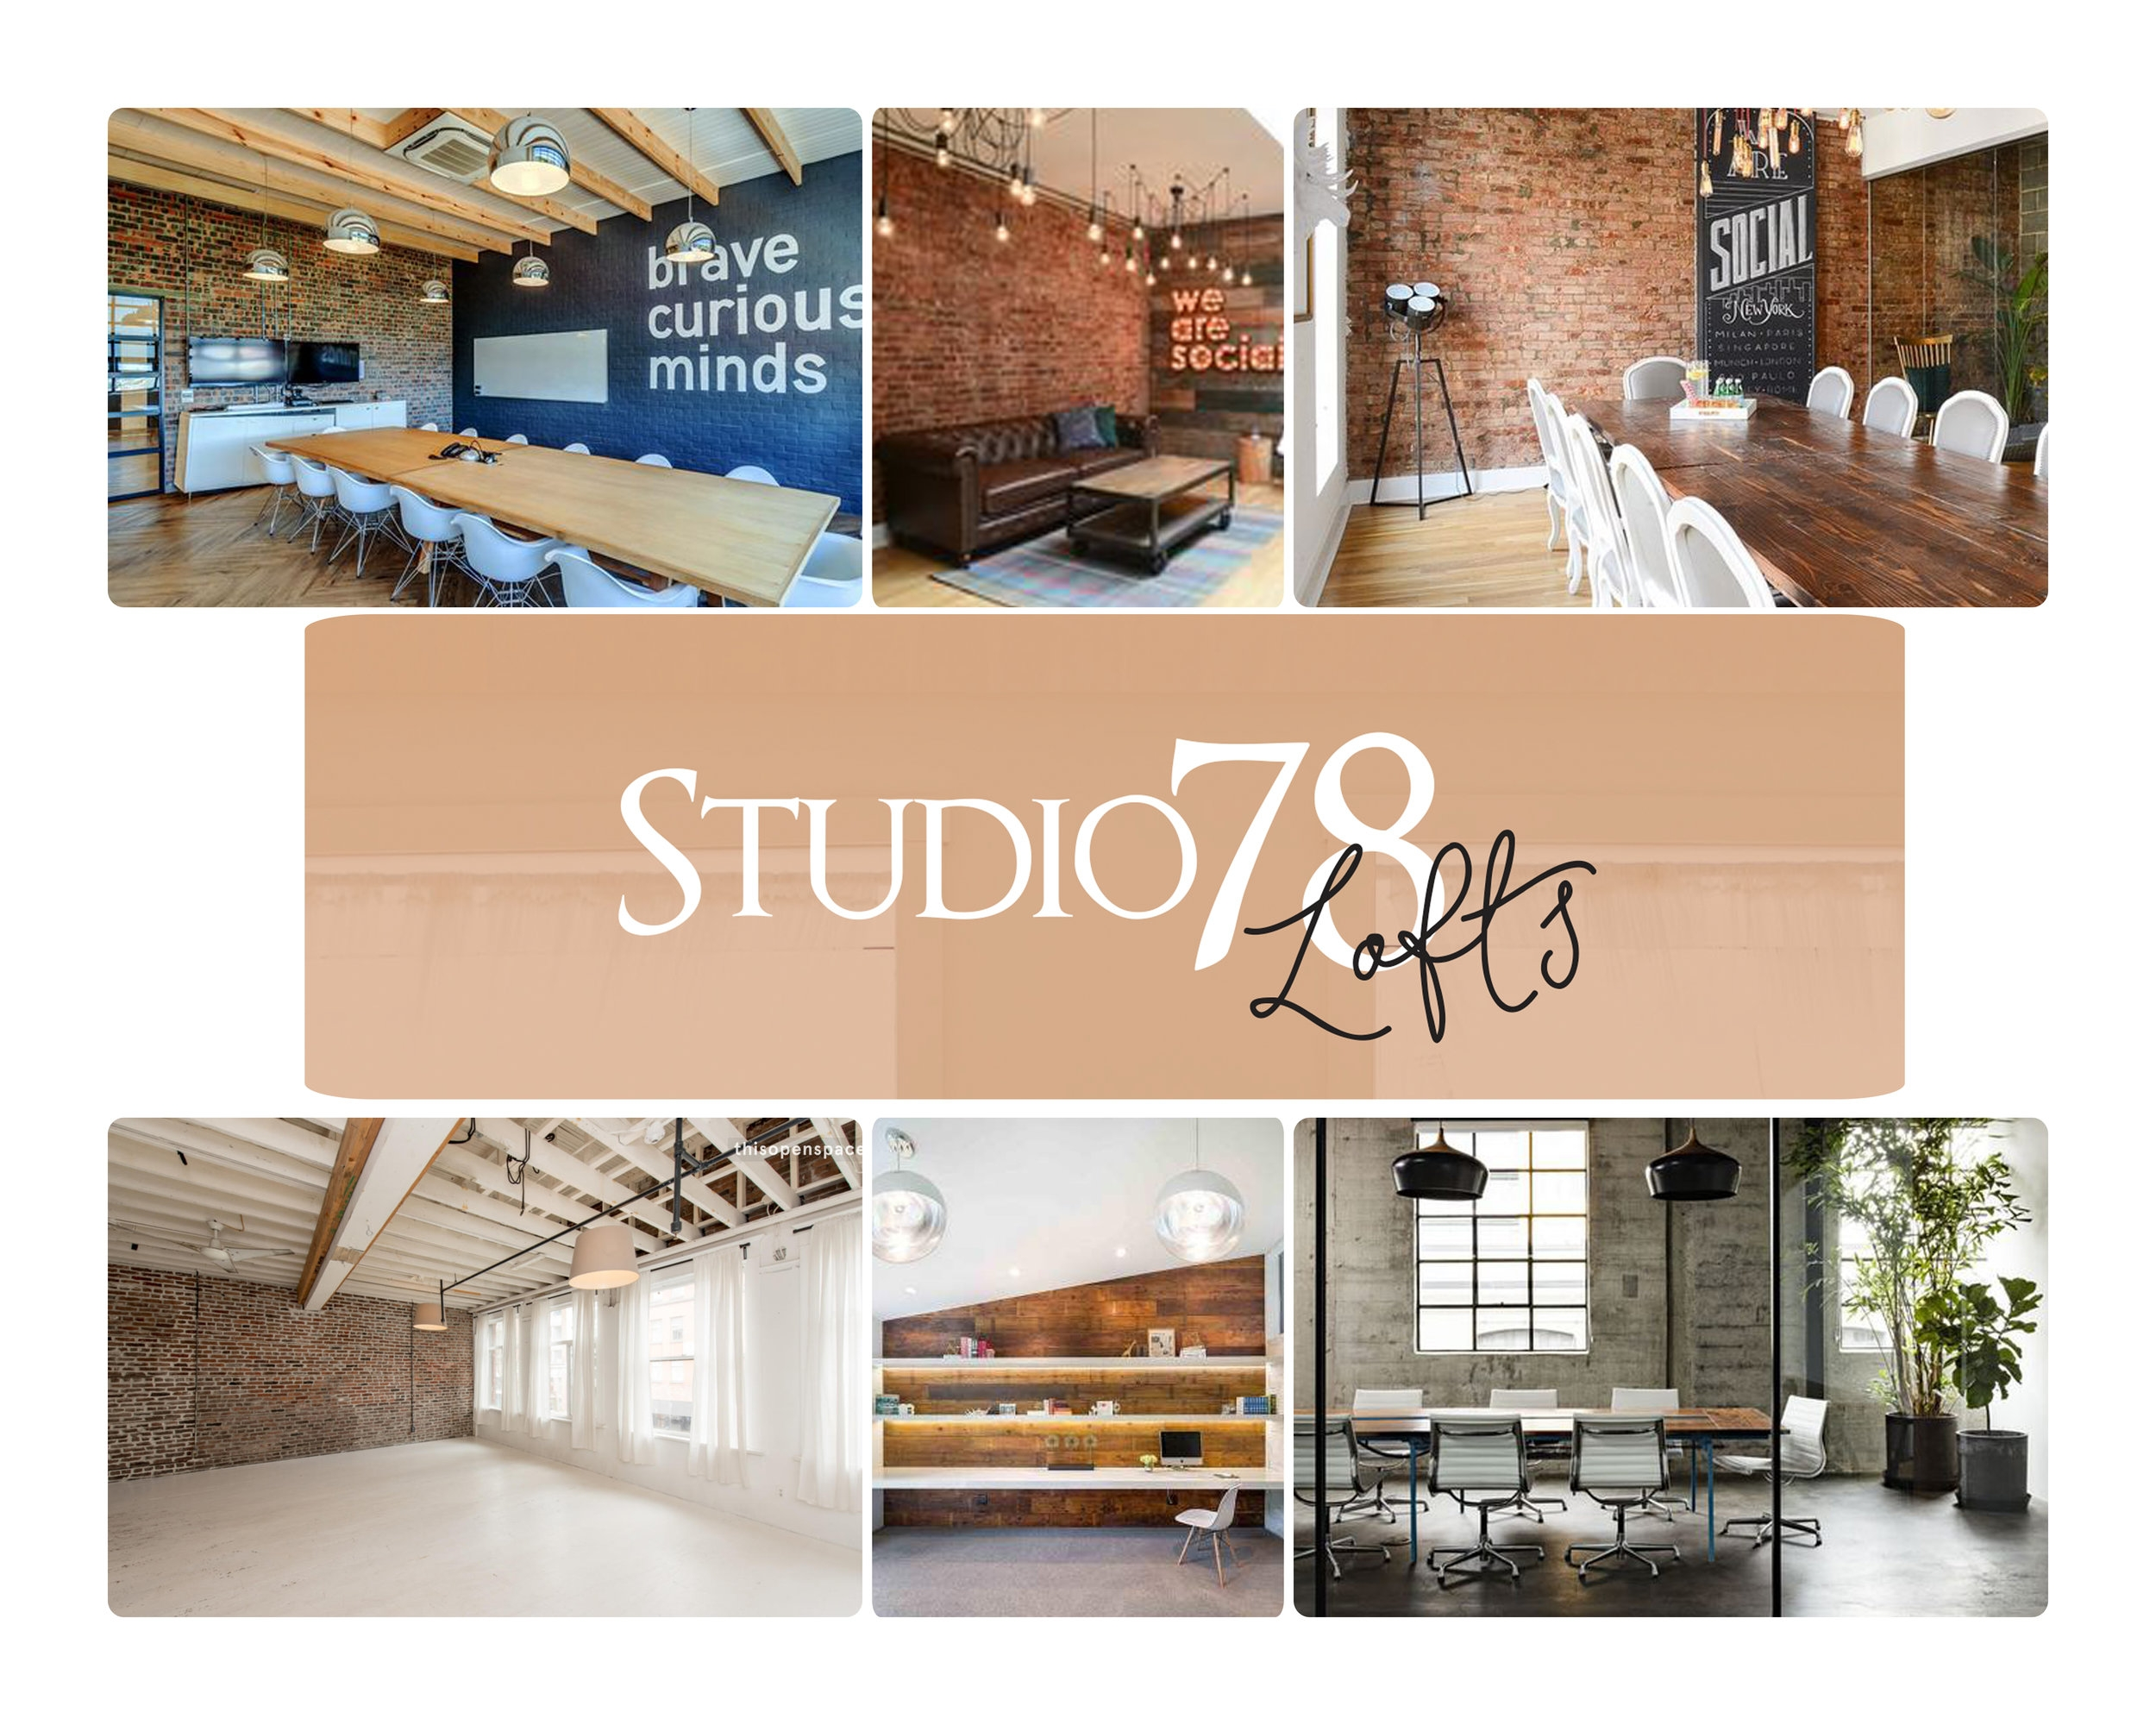 Concept and design of Studio 78 Lofts will be similar to these examples as they are shown for vision and concept only - but with our own unique twists and designs - coming October 2018.